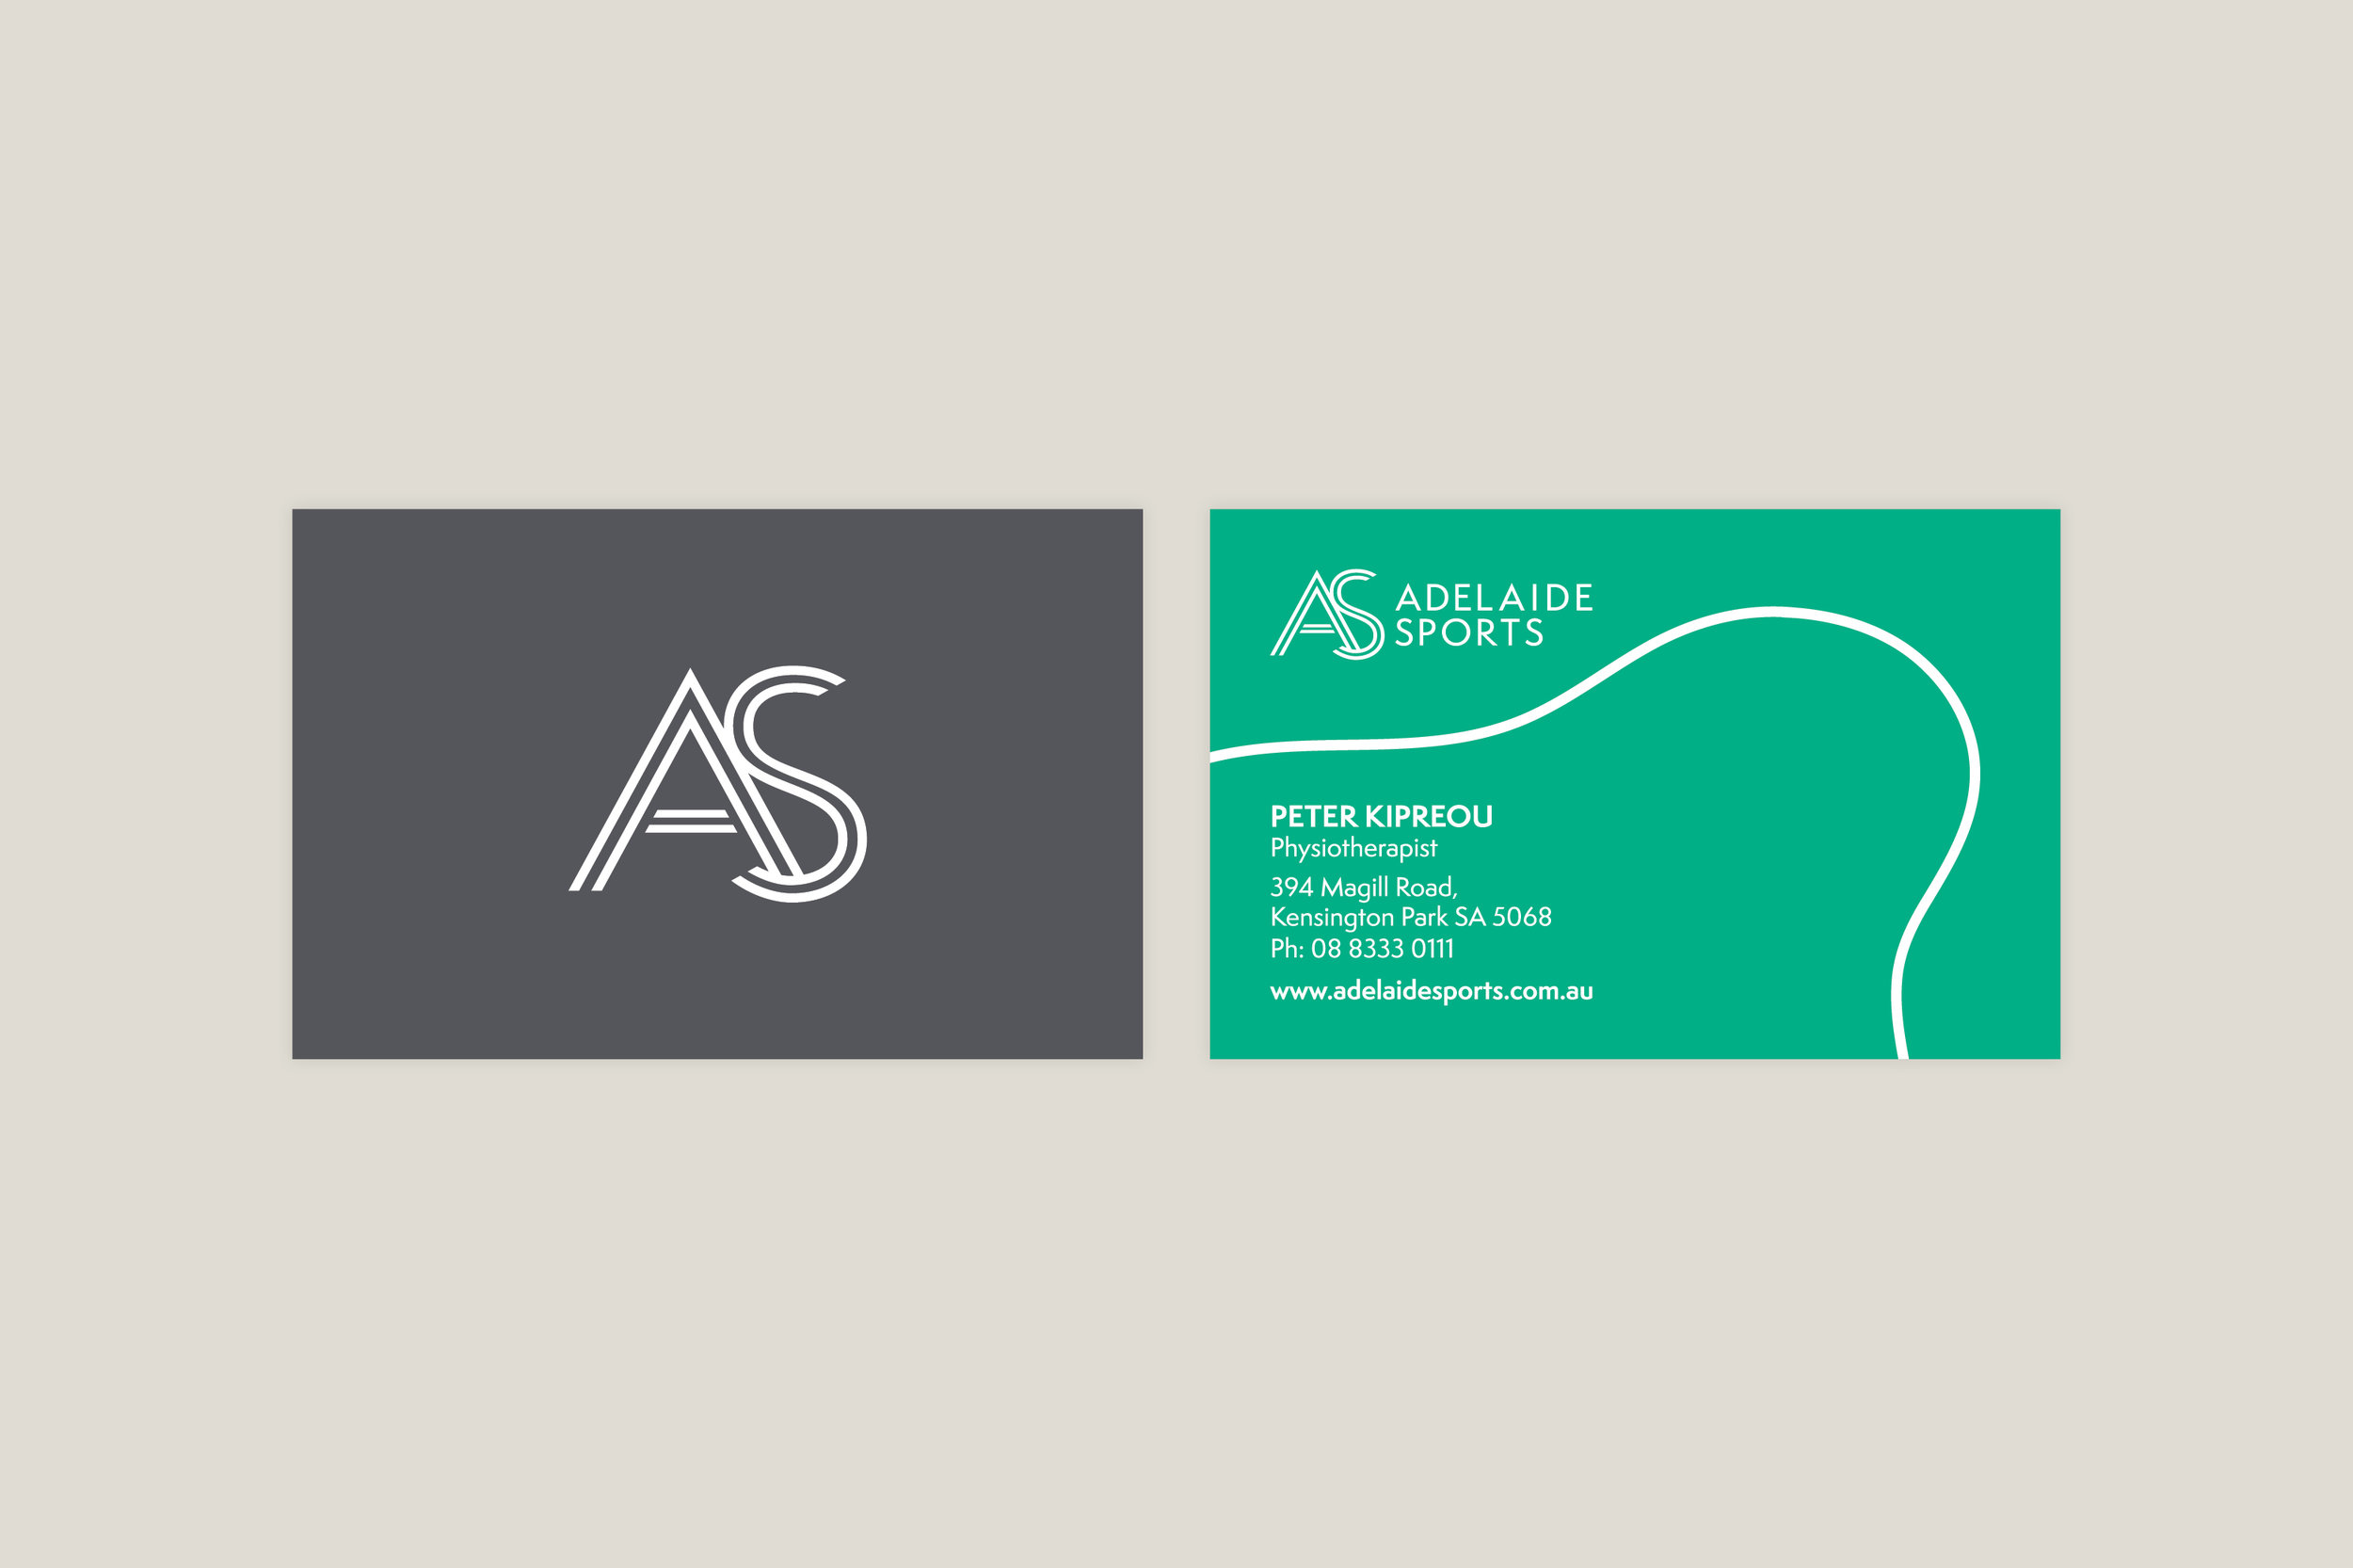 Potion Creative Adelaide Sports Brand Business Cards.jpg